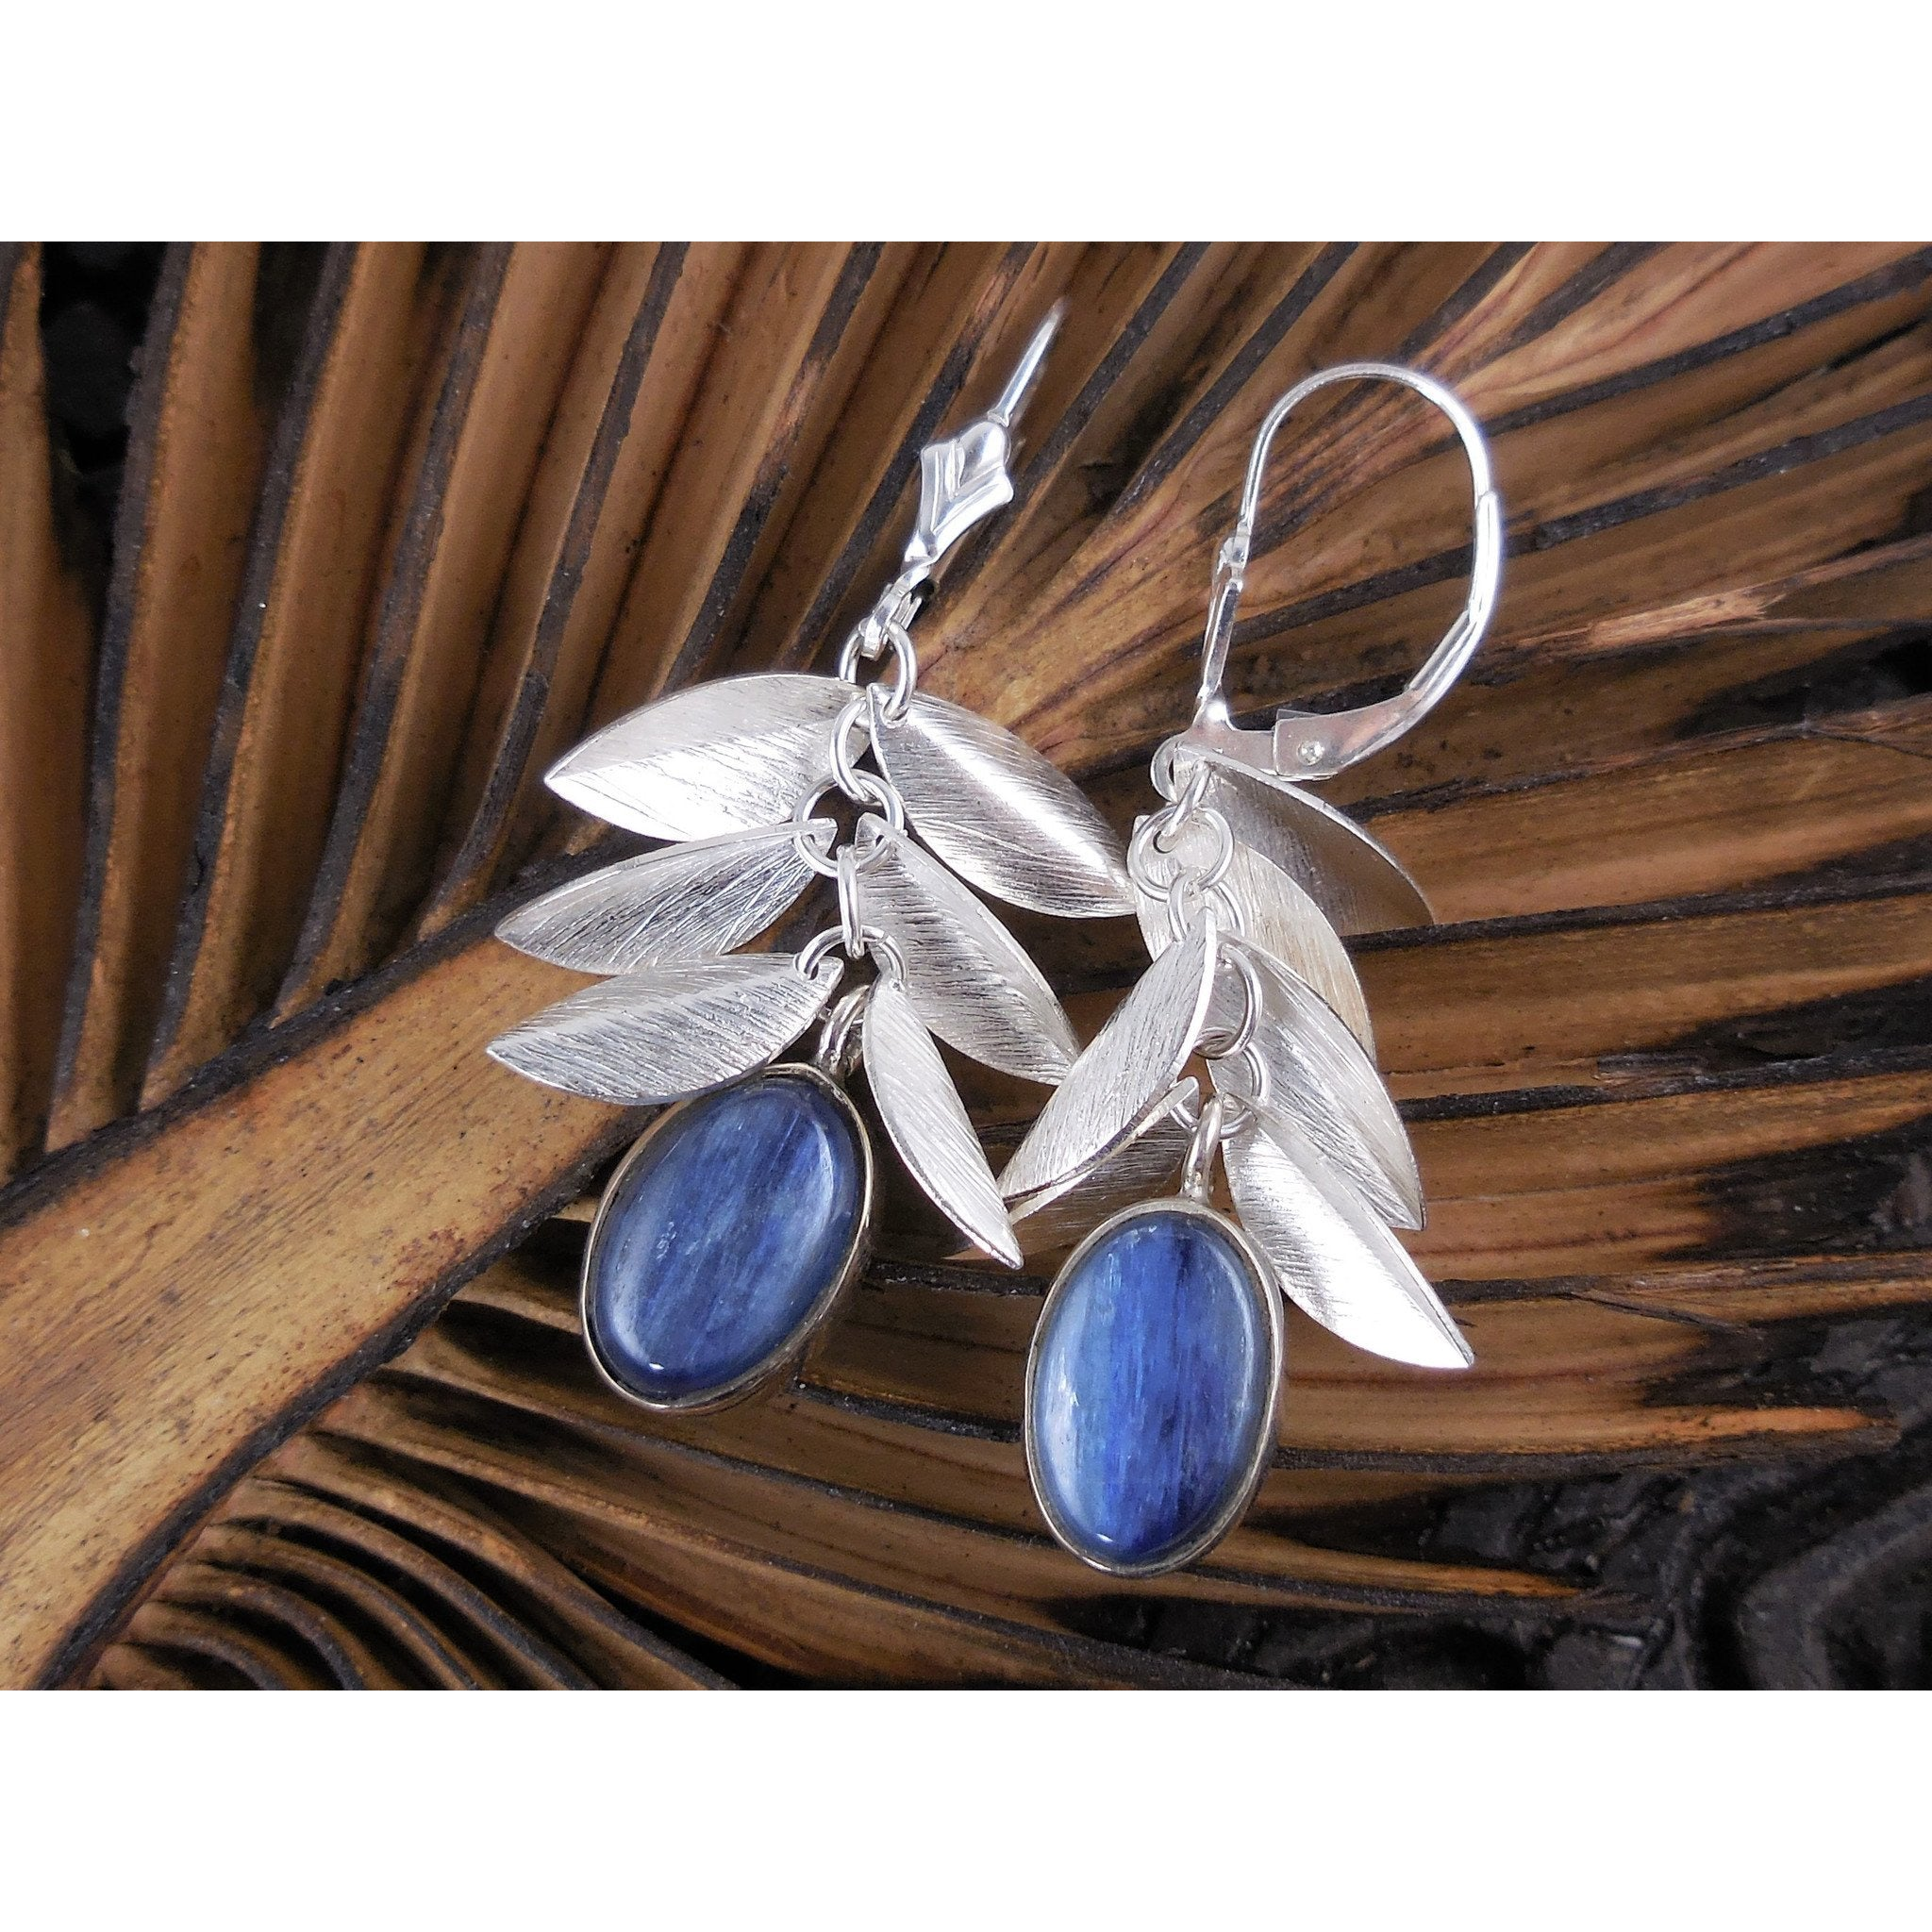 Kyanite Cabochon Sterling Silver Earrings